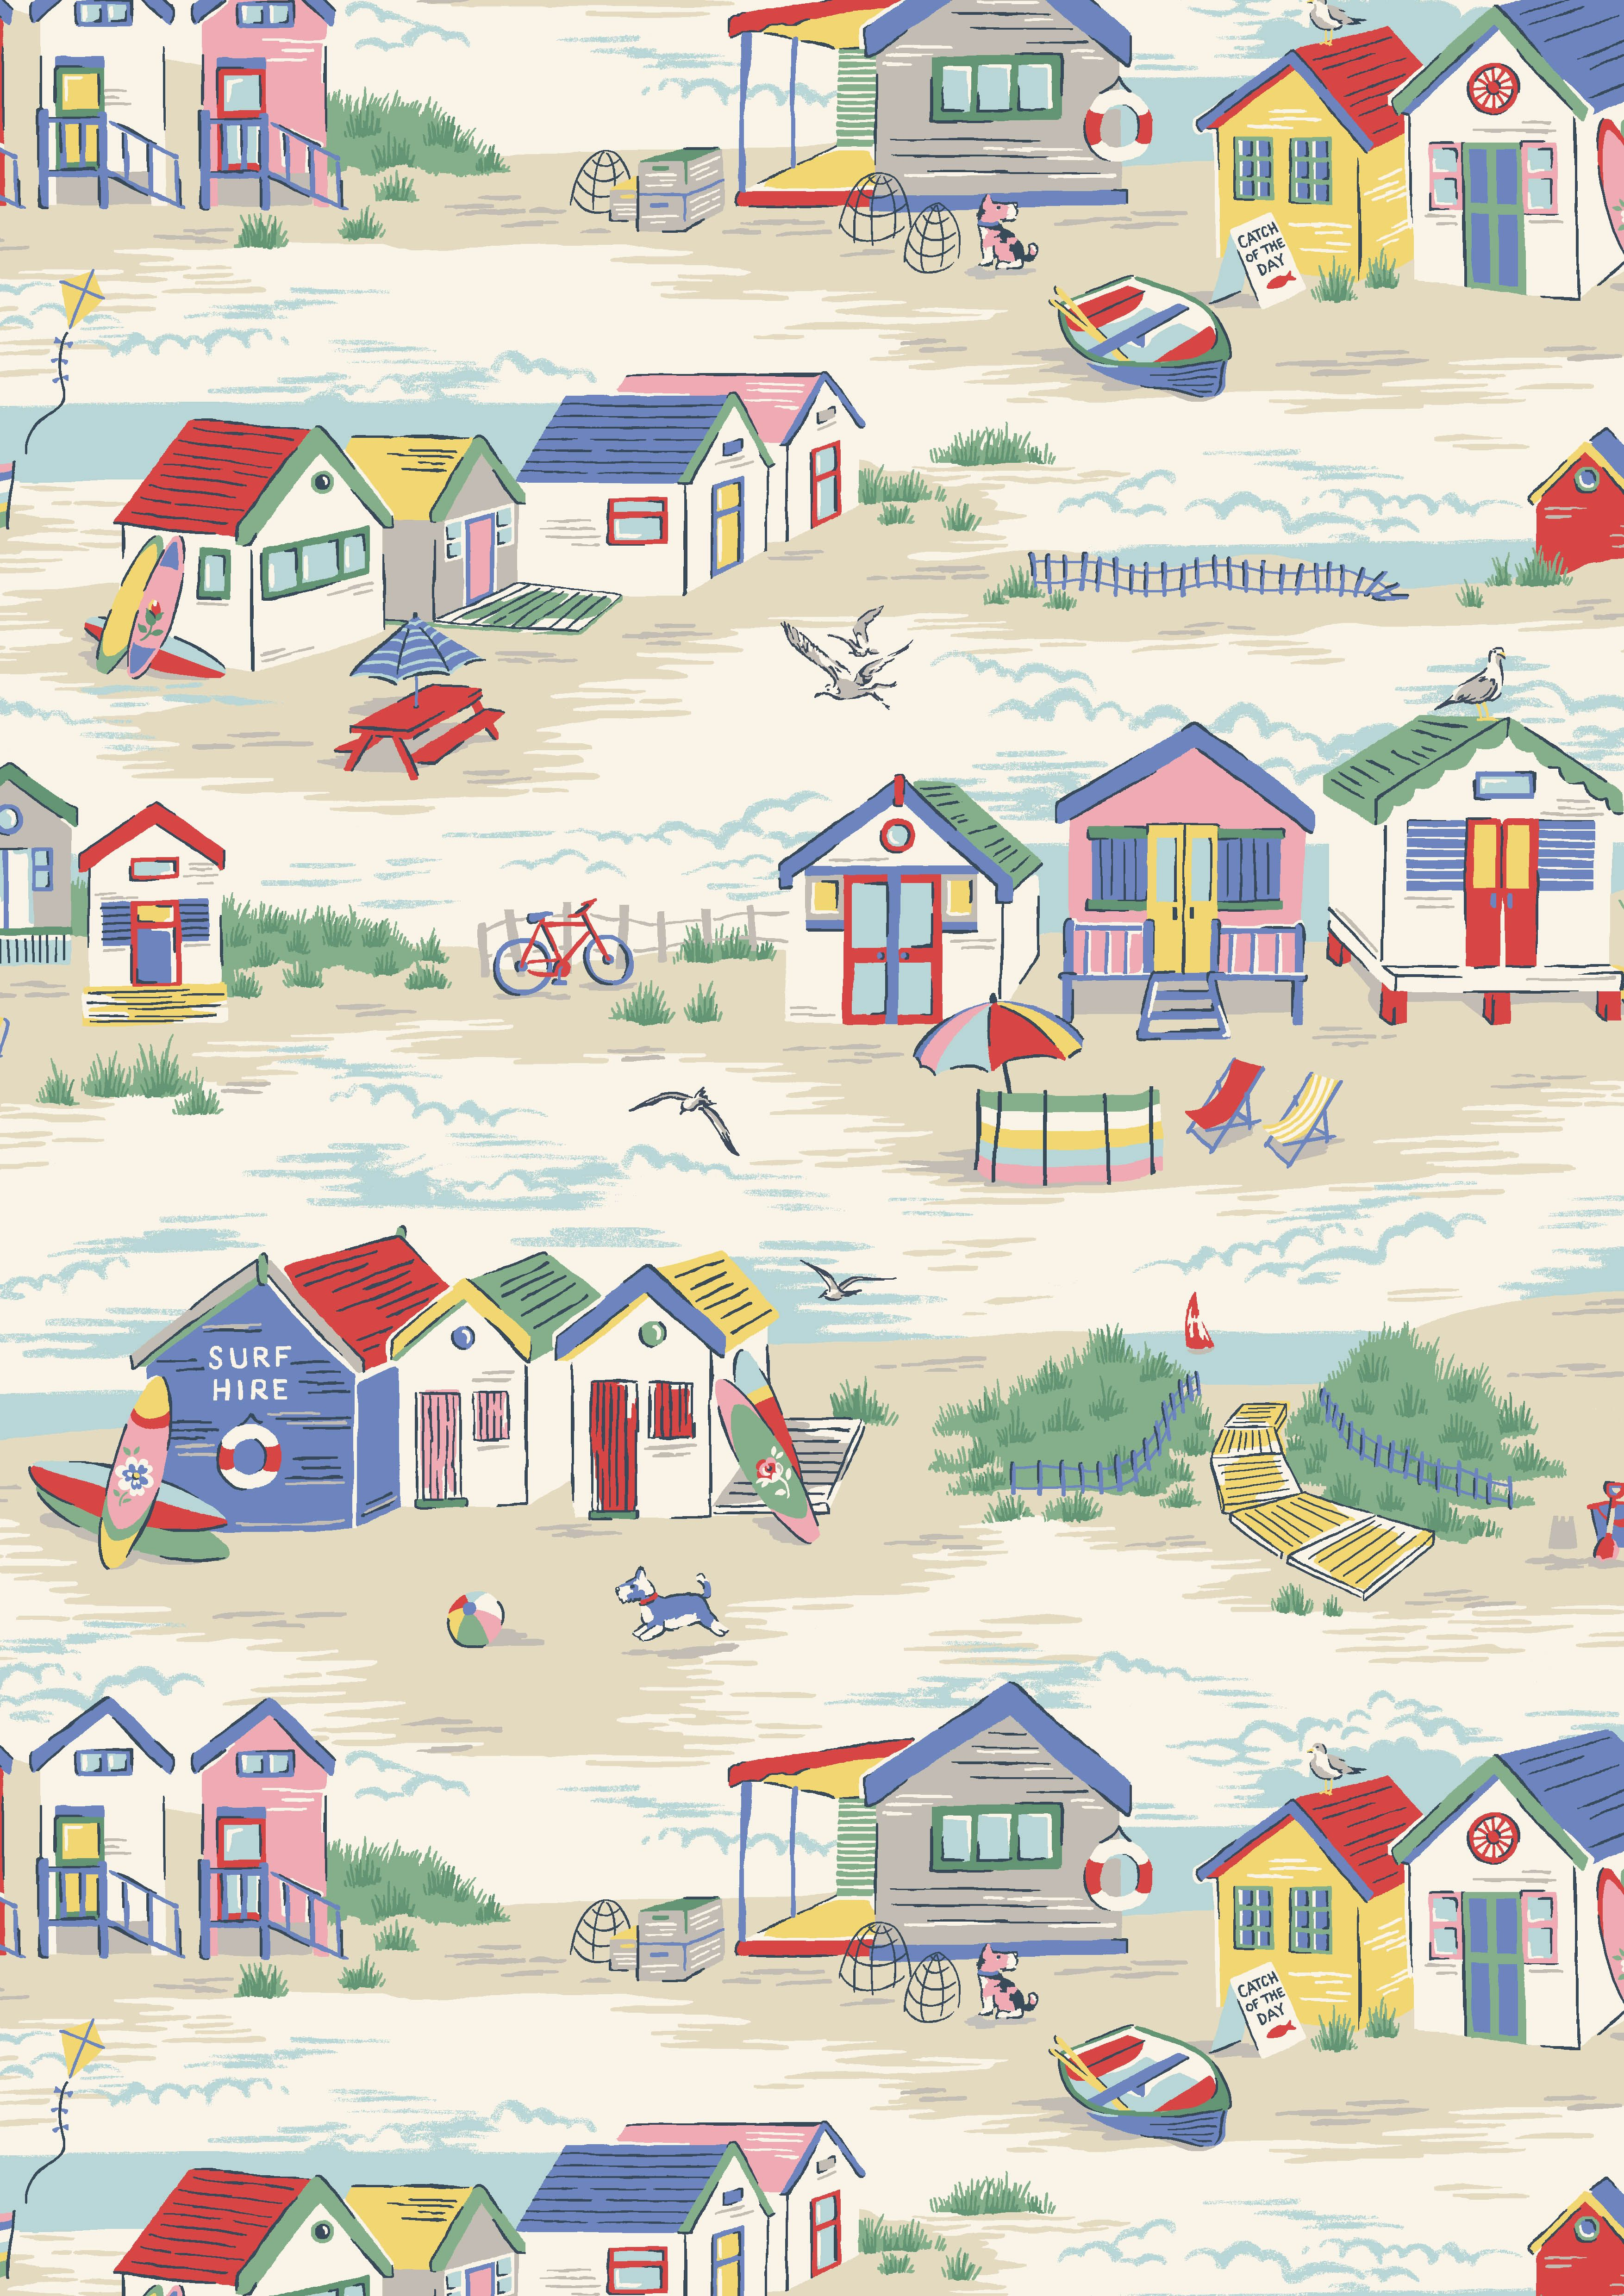 Beach huts bright british beach huts are at the heart of our playful seaside scene cath - Dessin cabine de plage ...